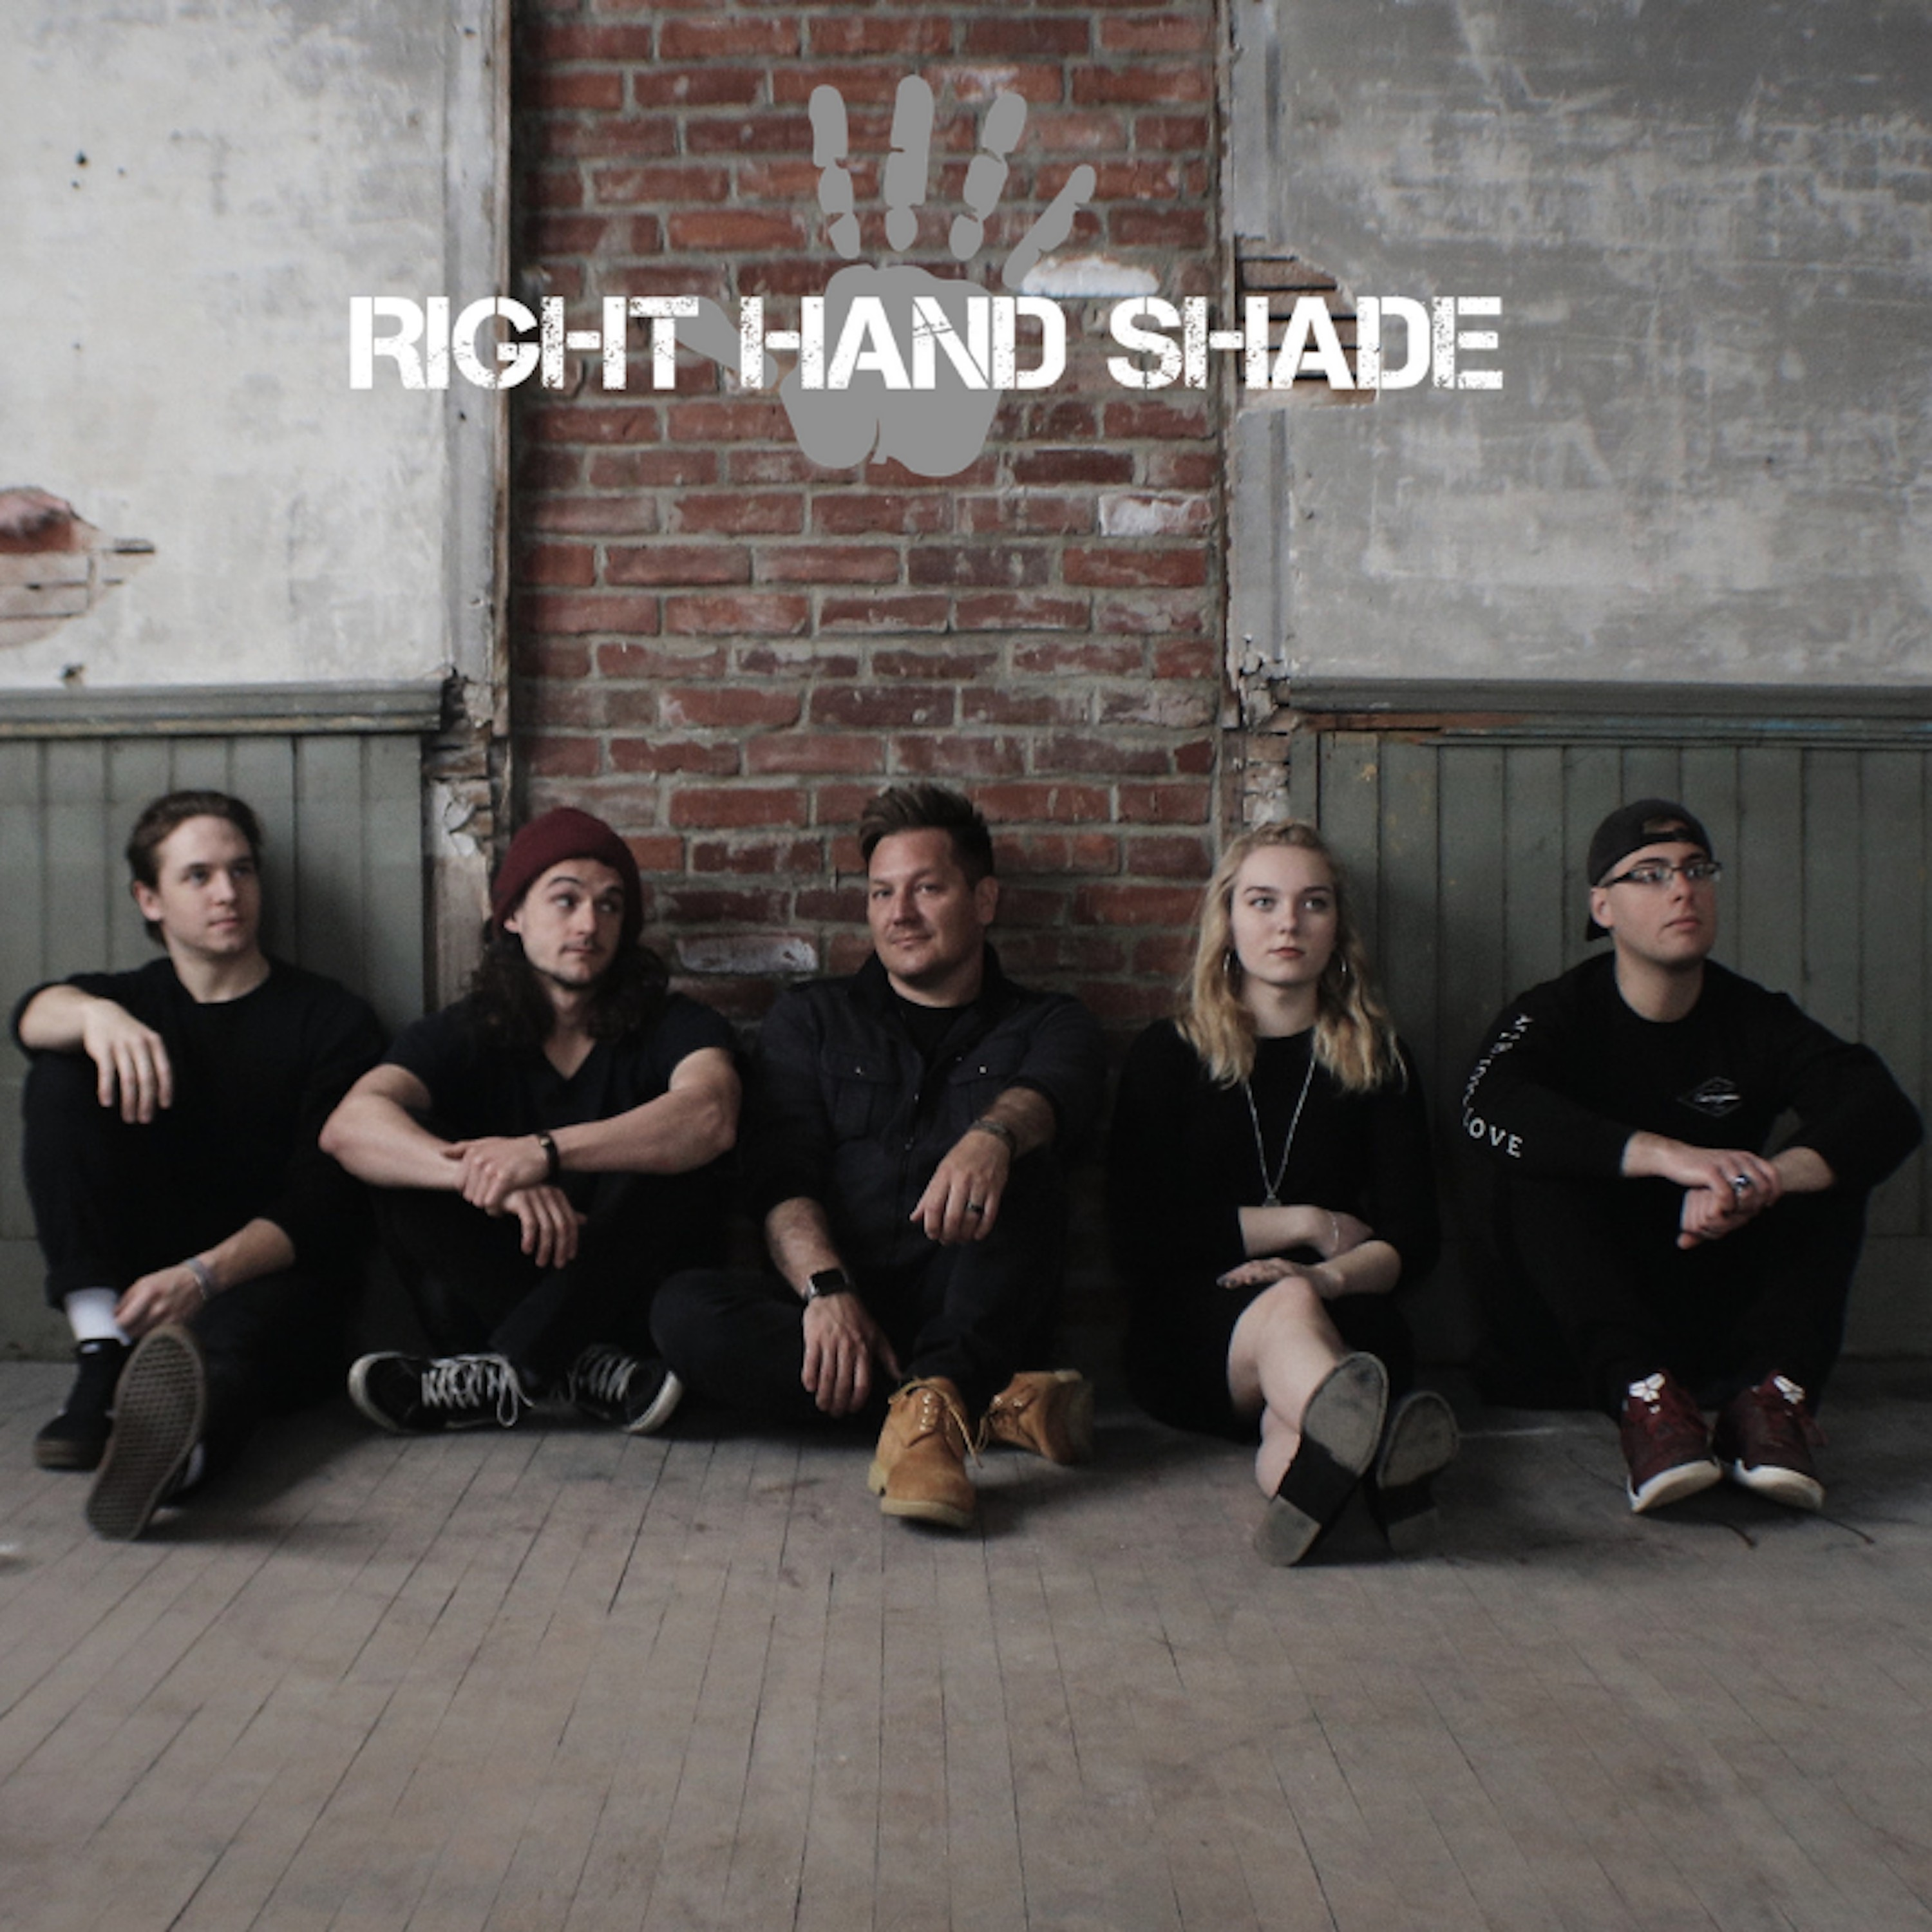 RIGHT HAND SHADE DROPS SELF-TITLED DEBUT ALBUM TODAY